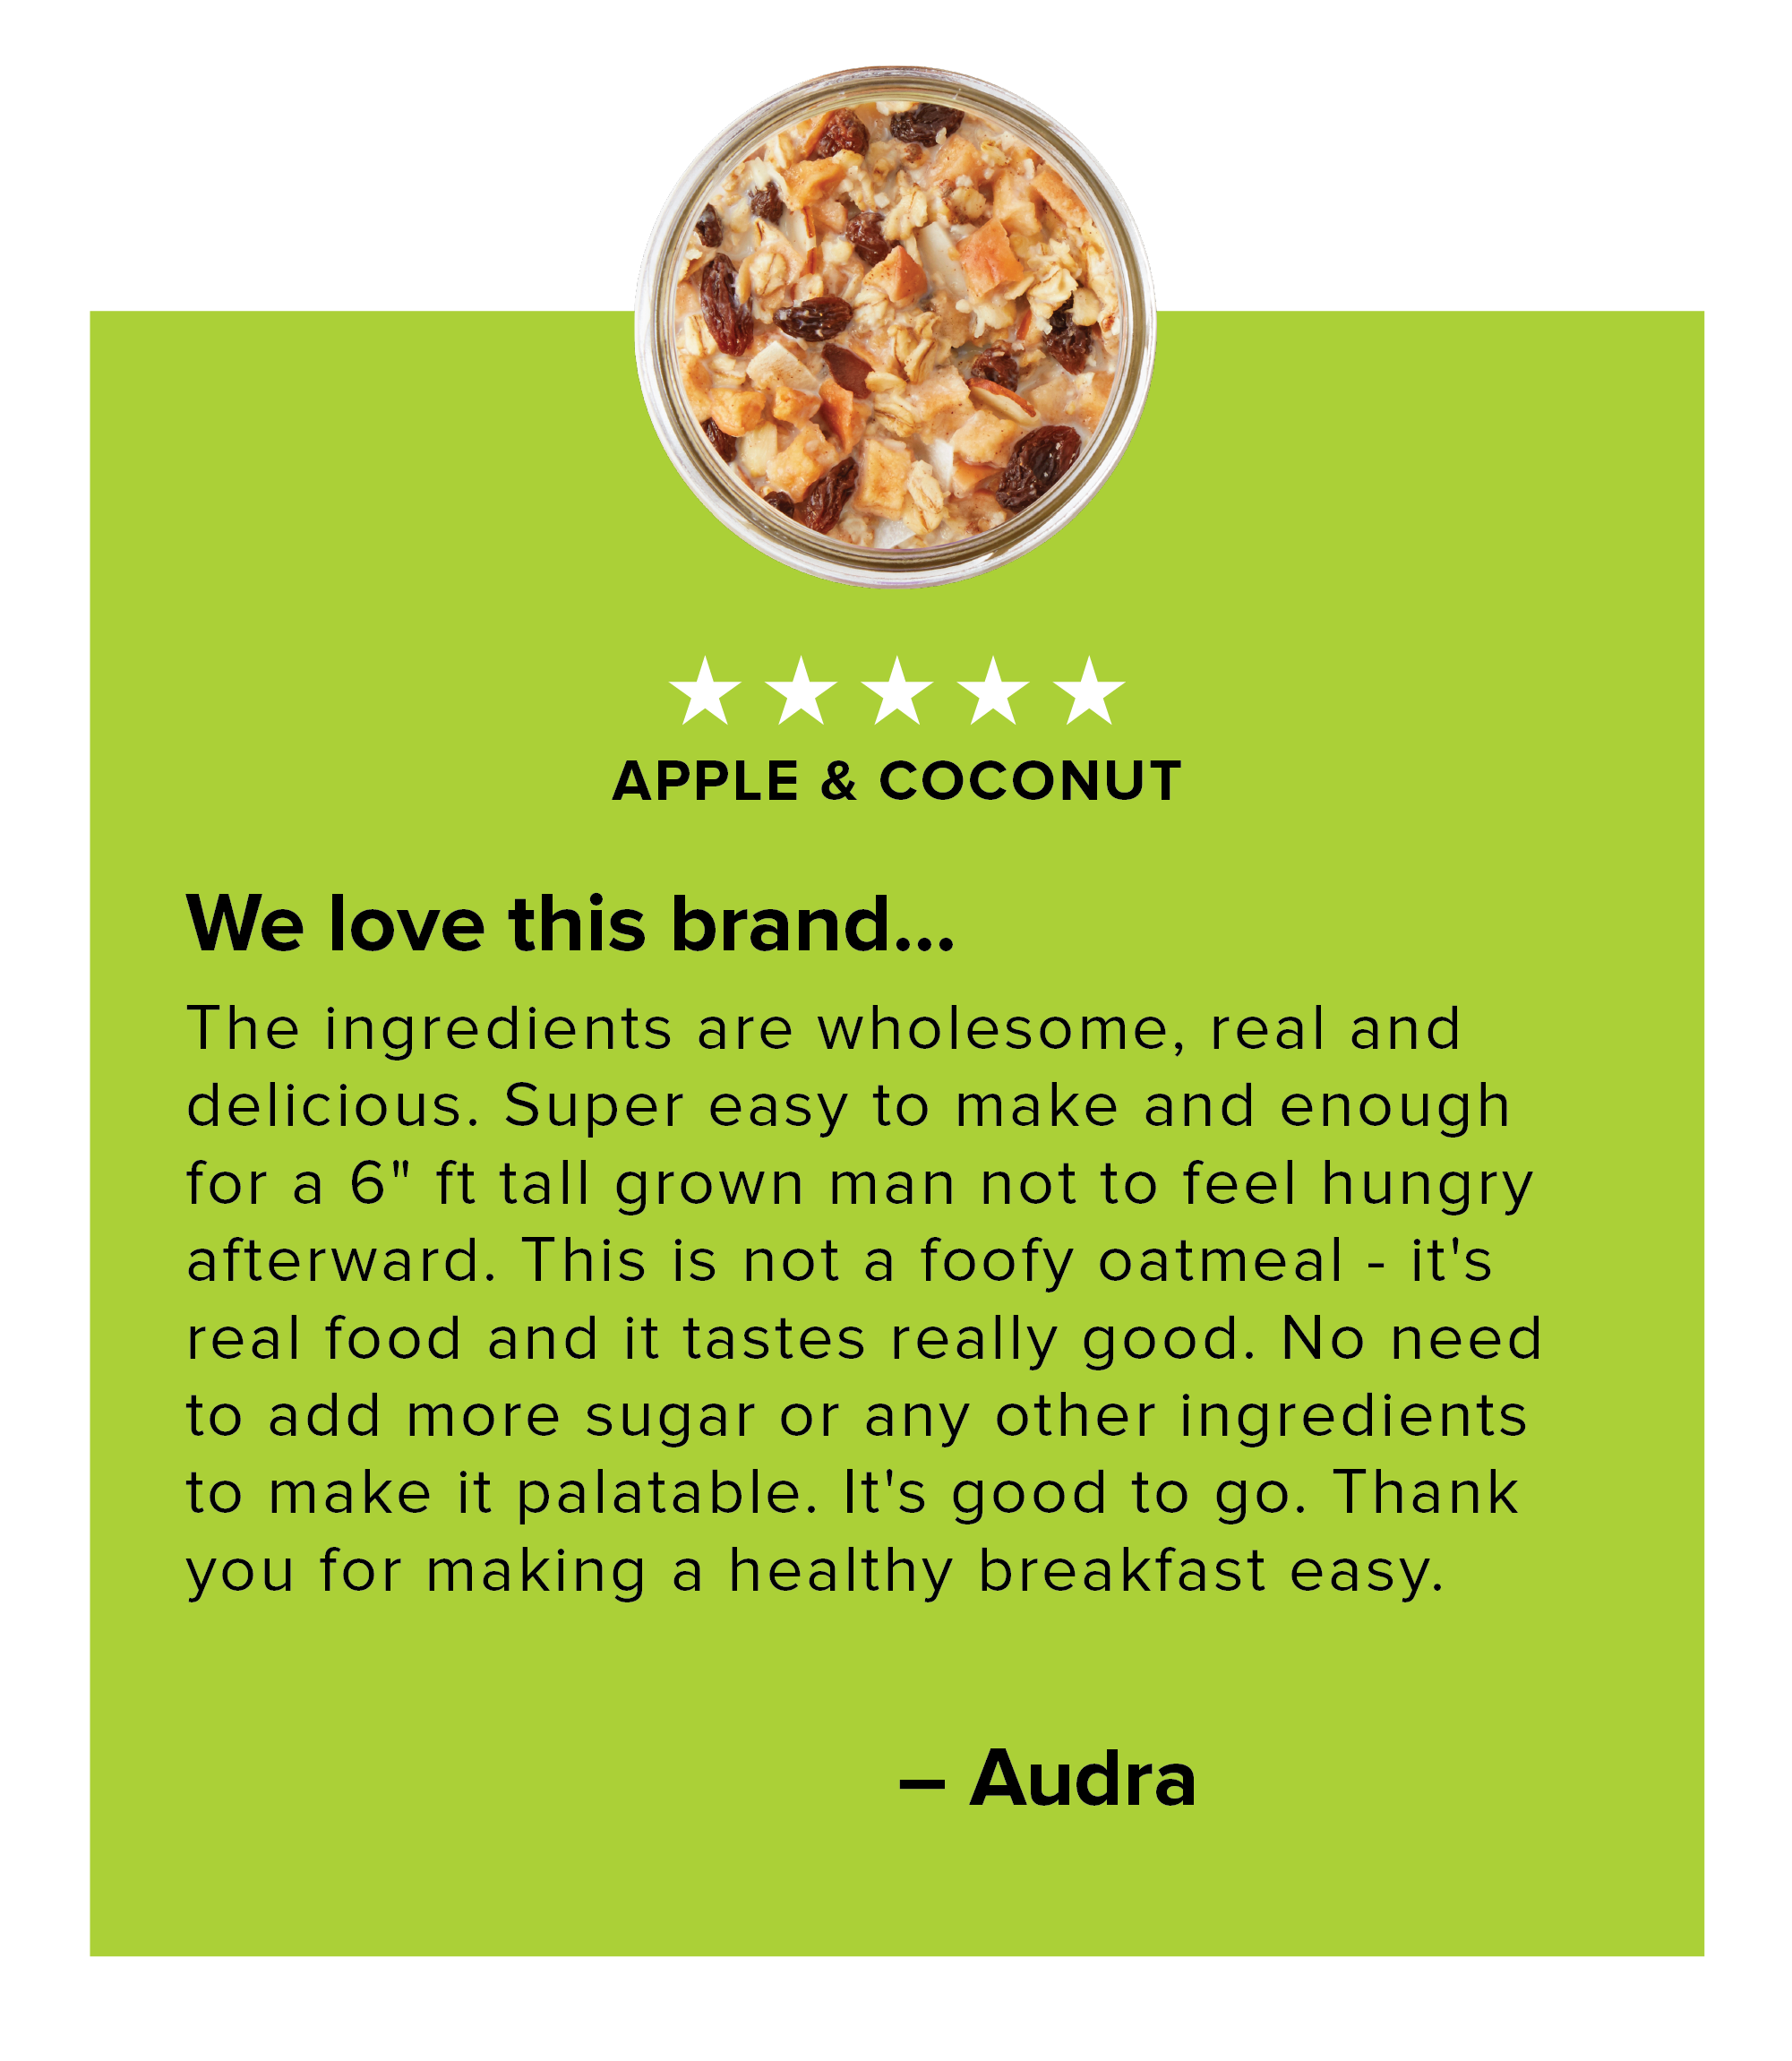 Apple & Coconut Review